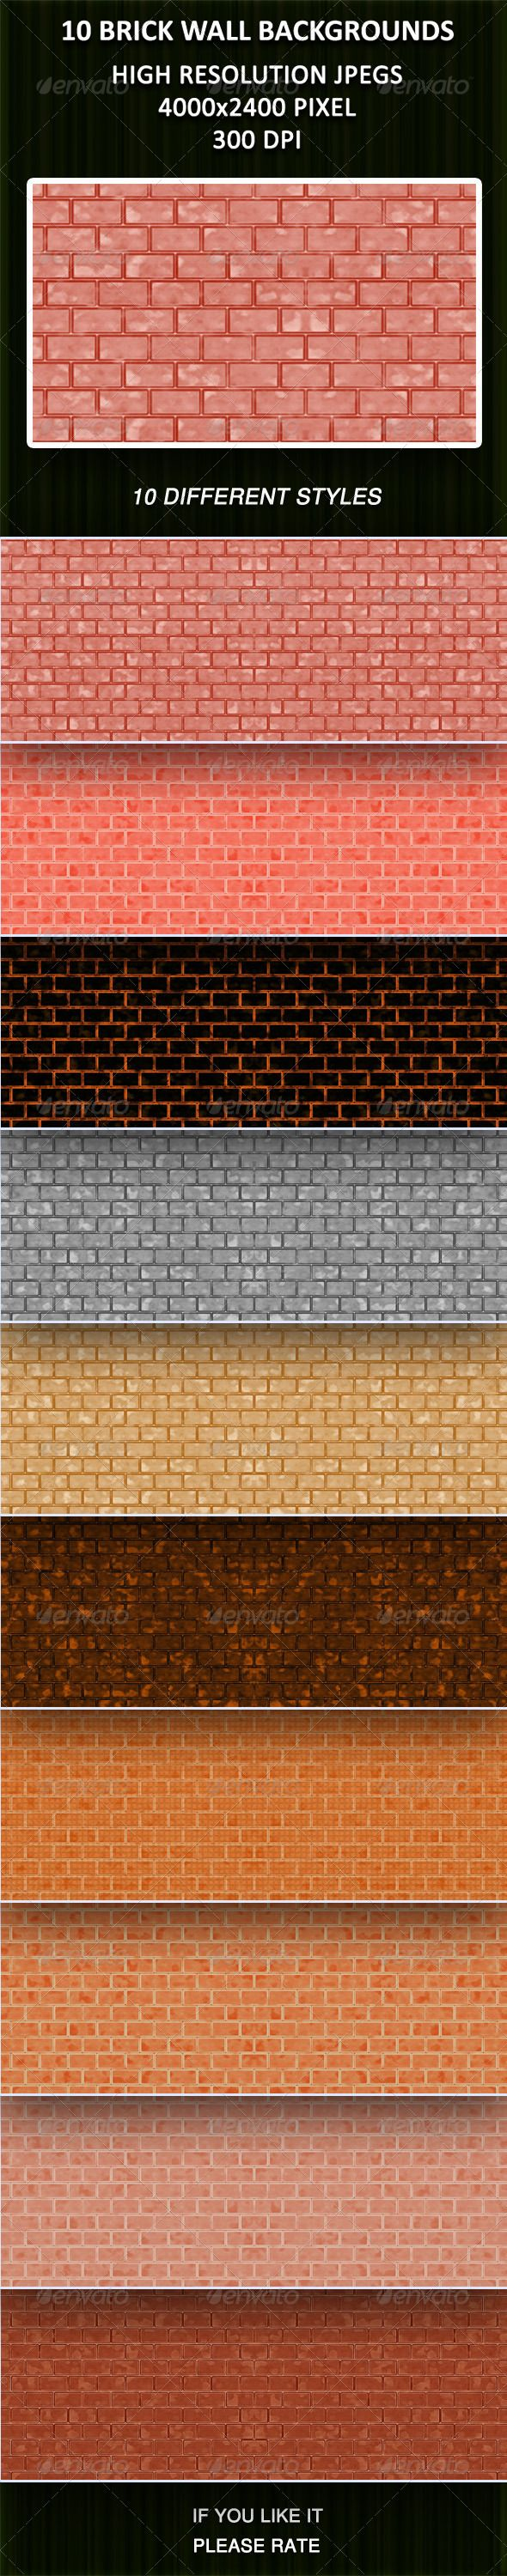 Plain wood table with hipster brick wall background stock photo - 10 Brick Wall Backgrounds